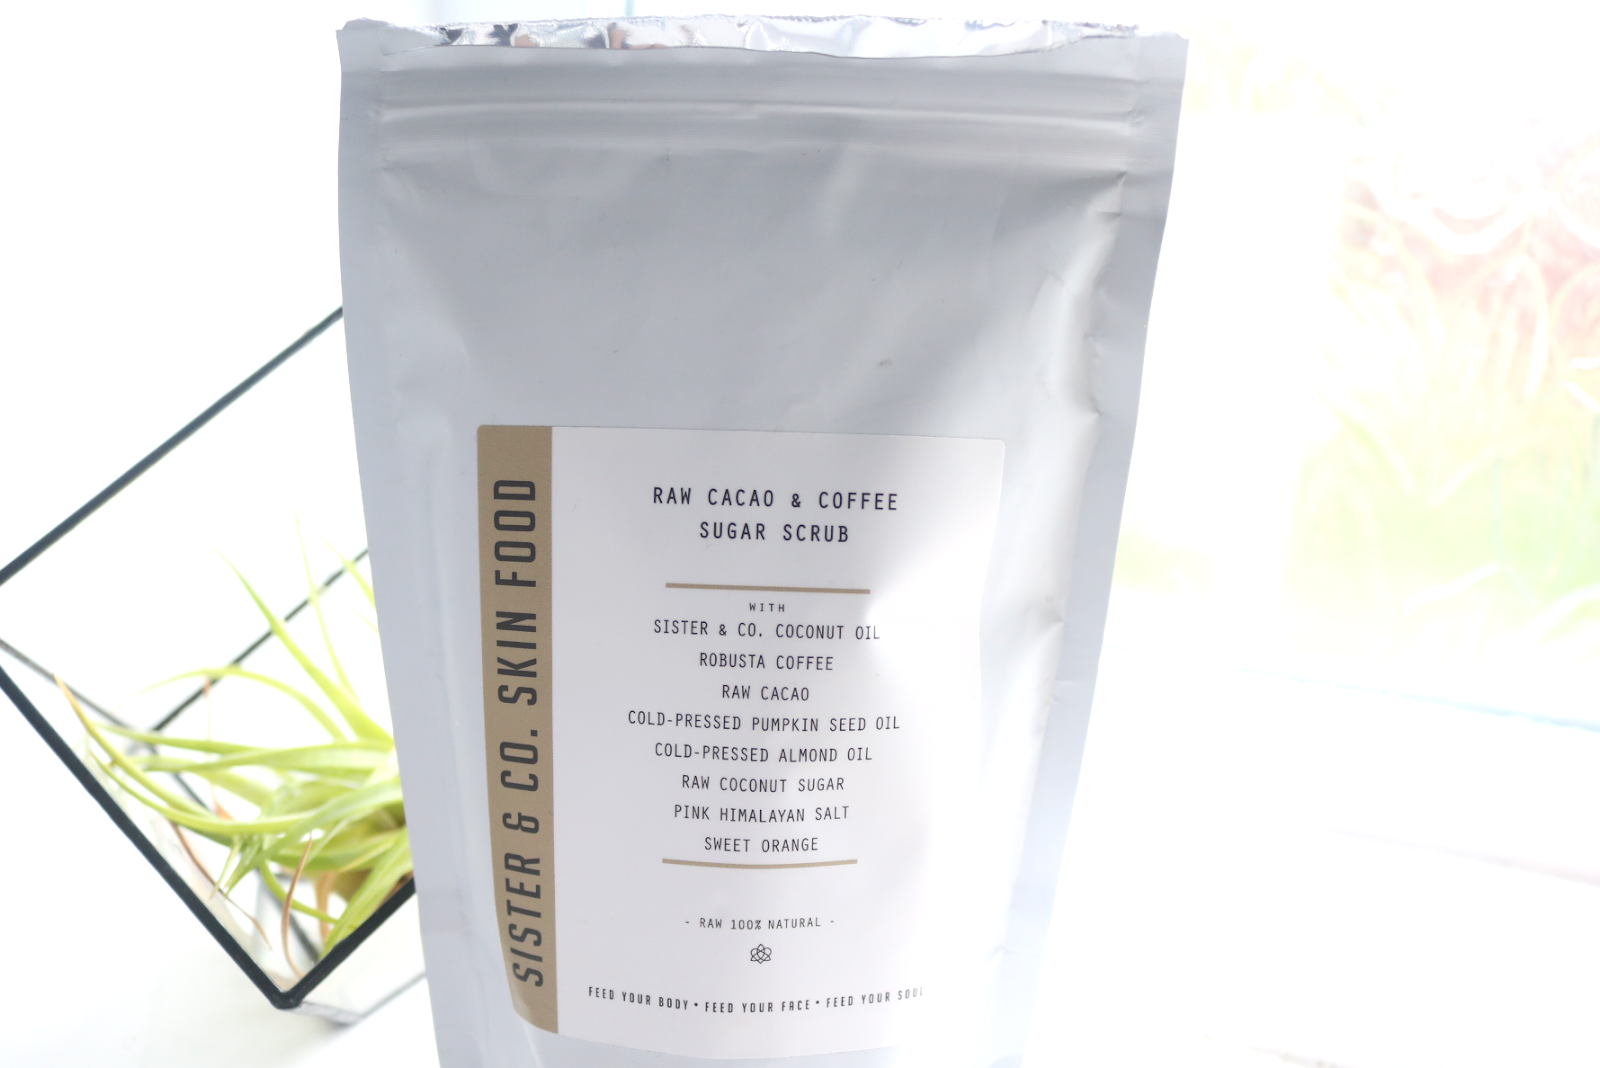 Sister & Co Raw Cacao & Coffee Sugar Scrub review